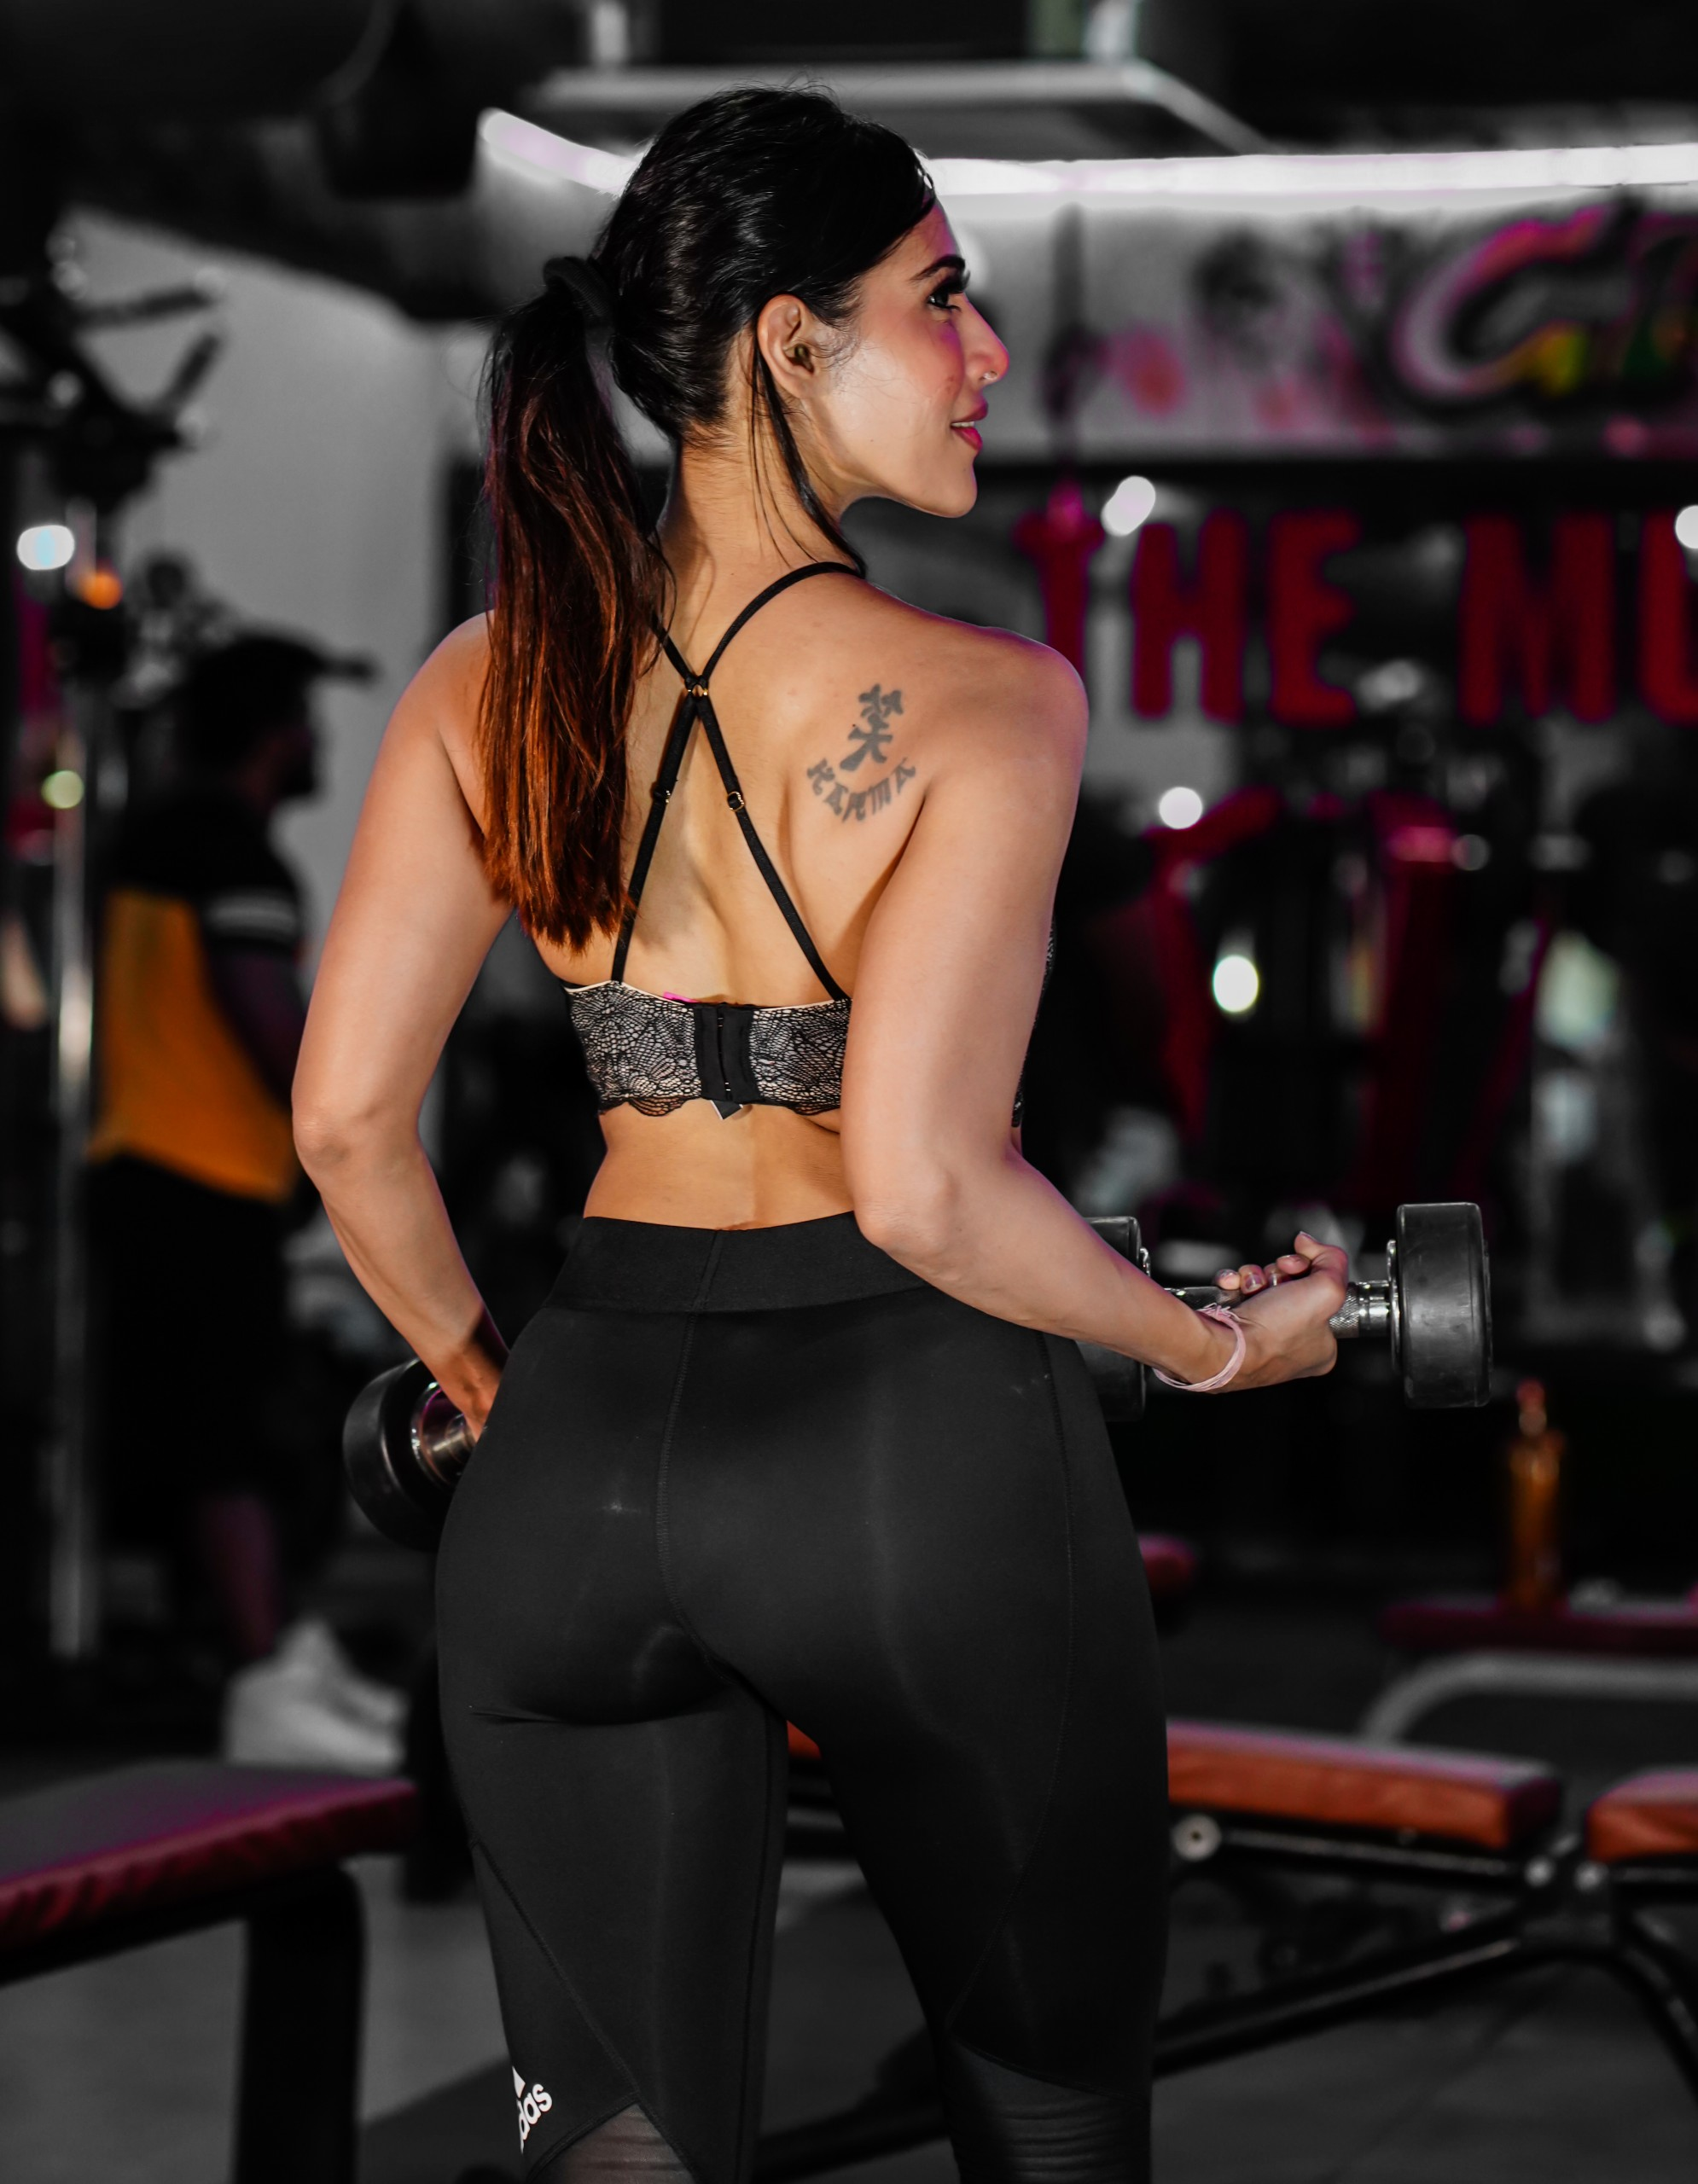 fitness model in gym with dumbbells